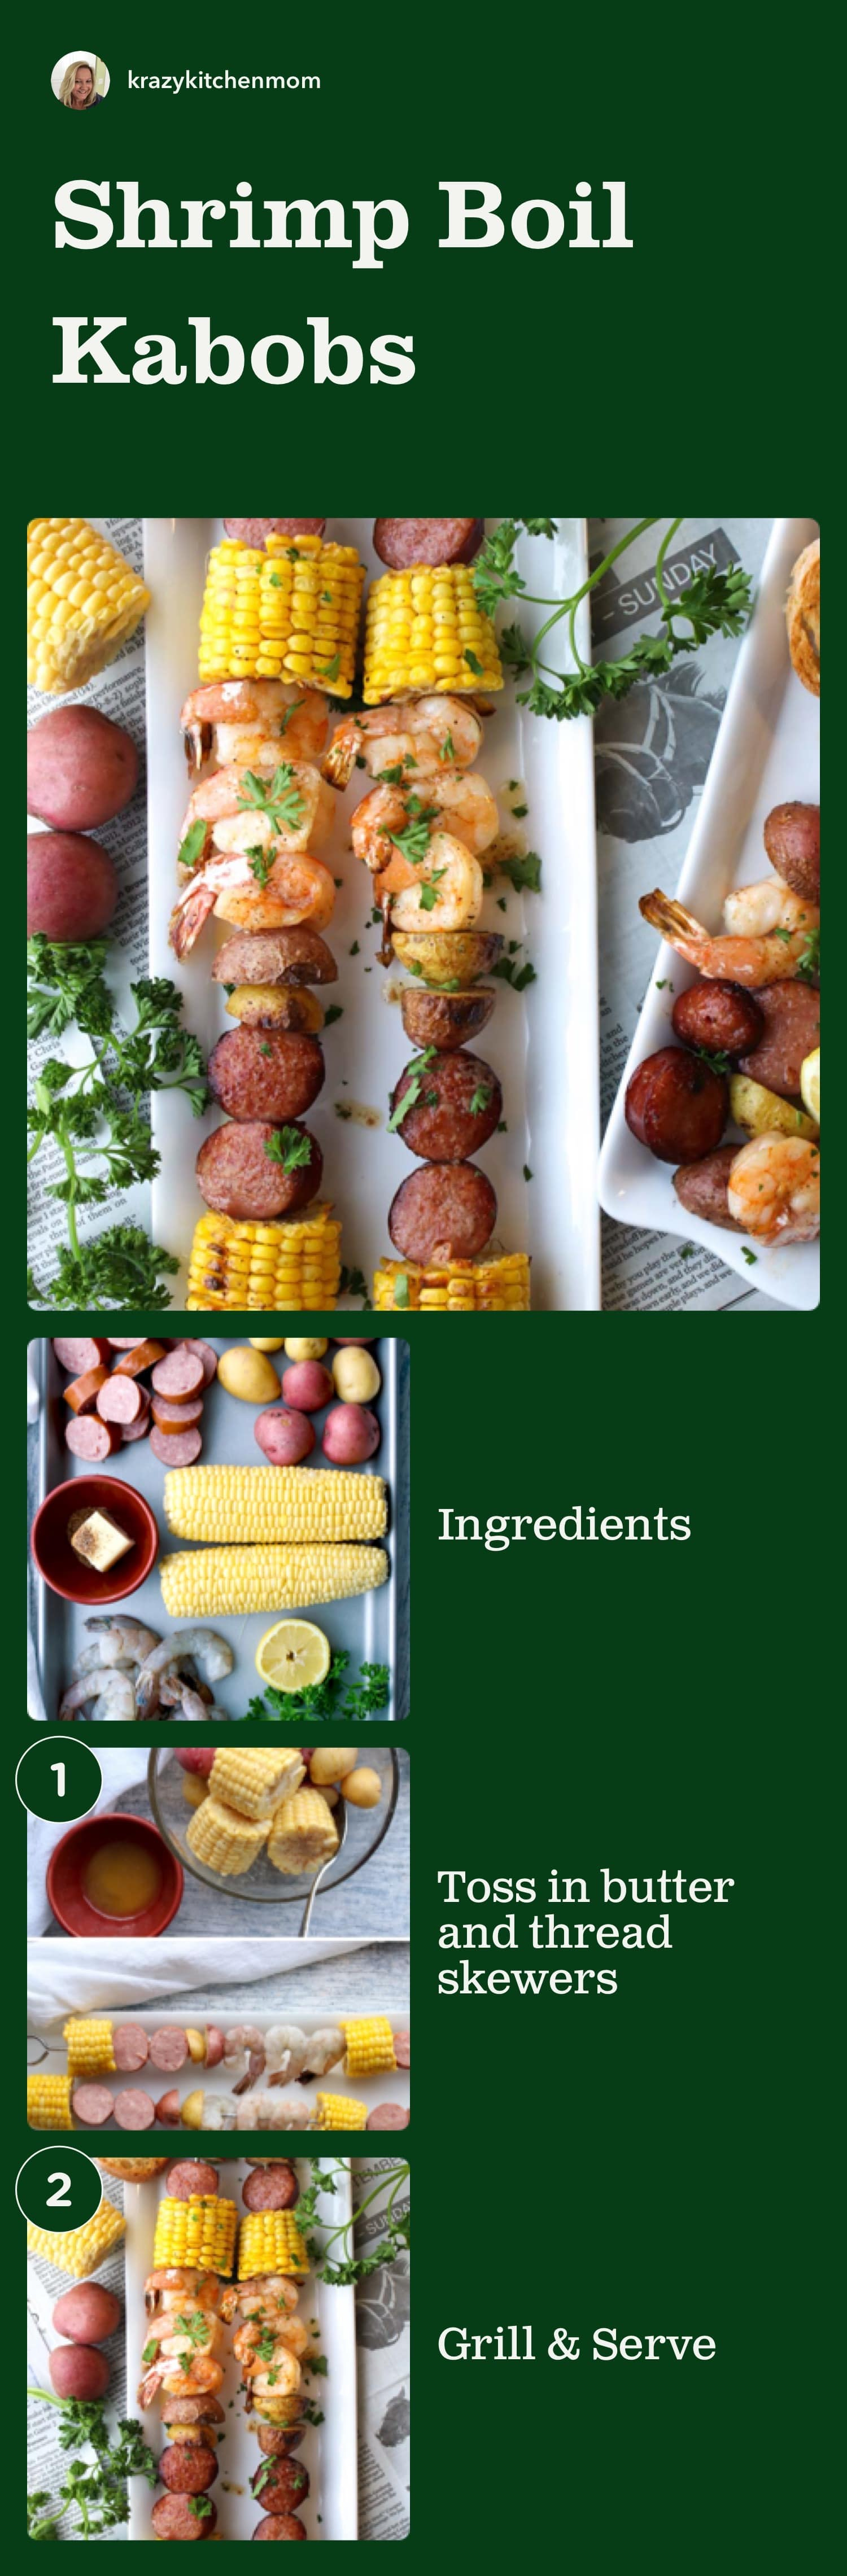 It's officially summer and time to fire up the grill for a summertime southern-style shrimp boil with big shrimp, corn, sausage, potatoes, and spices. via @krazykitchenmom